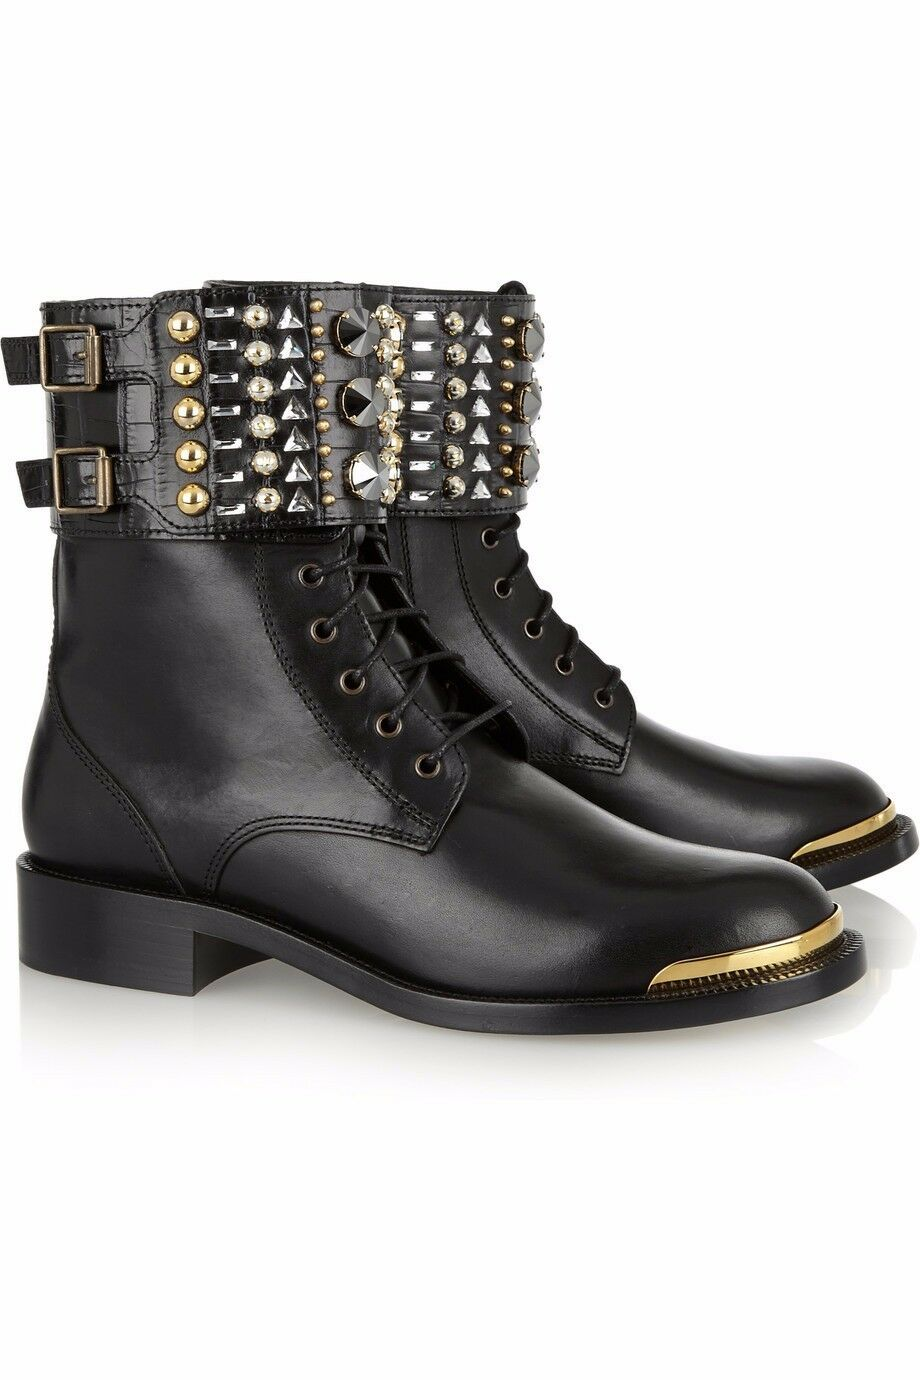 Fashion Women Round Toe Ankle Flat Boots Rhinestone Rivets & Retro Buckle Strap